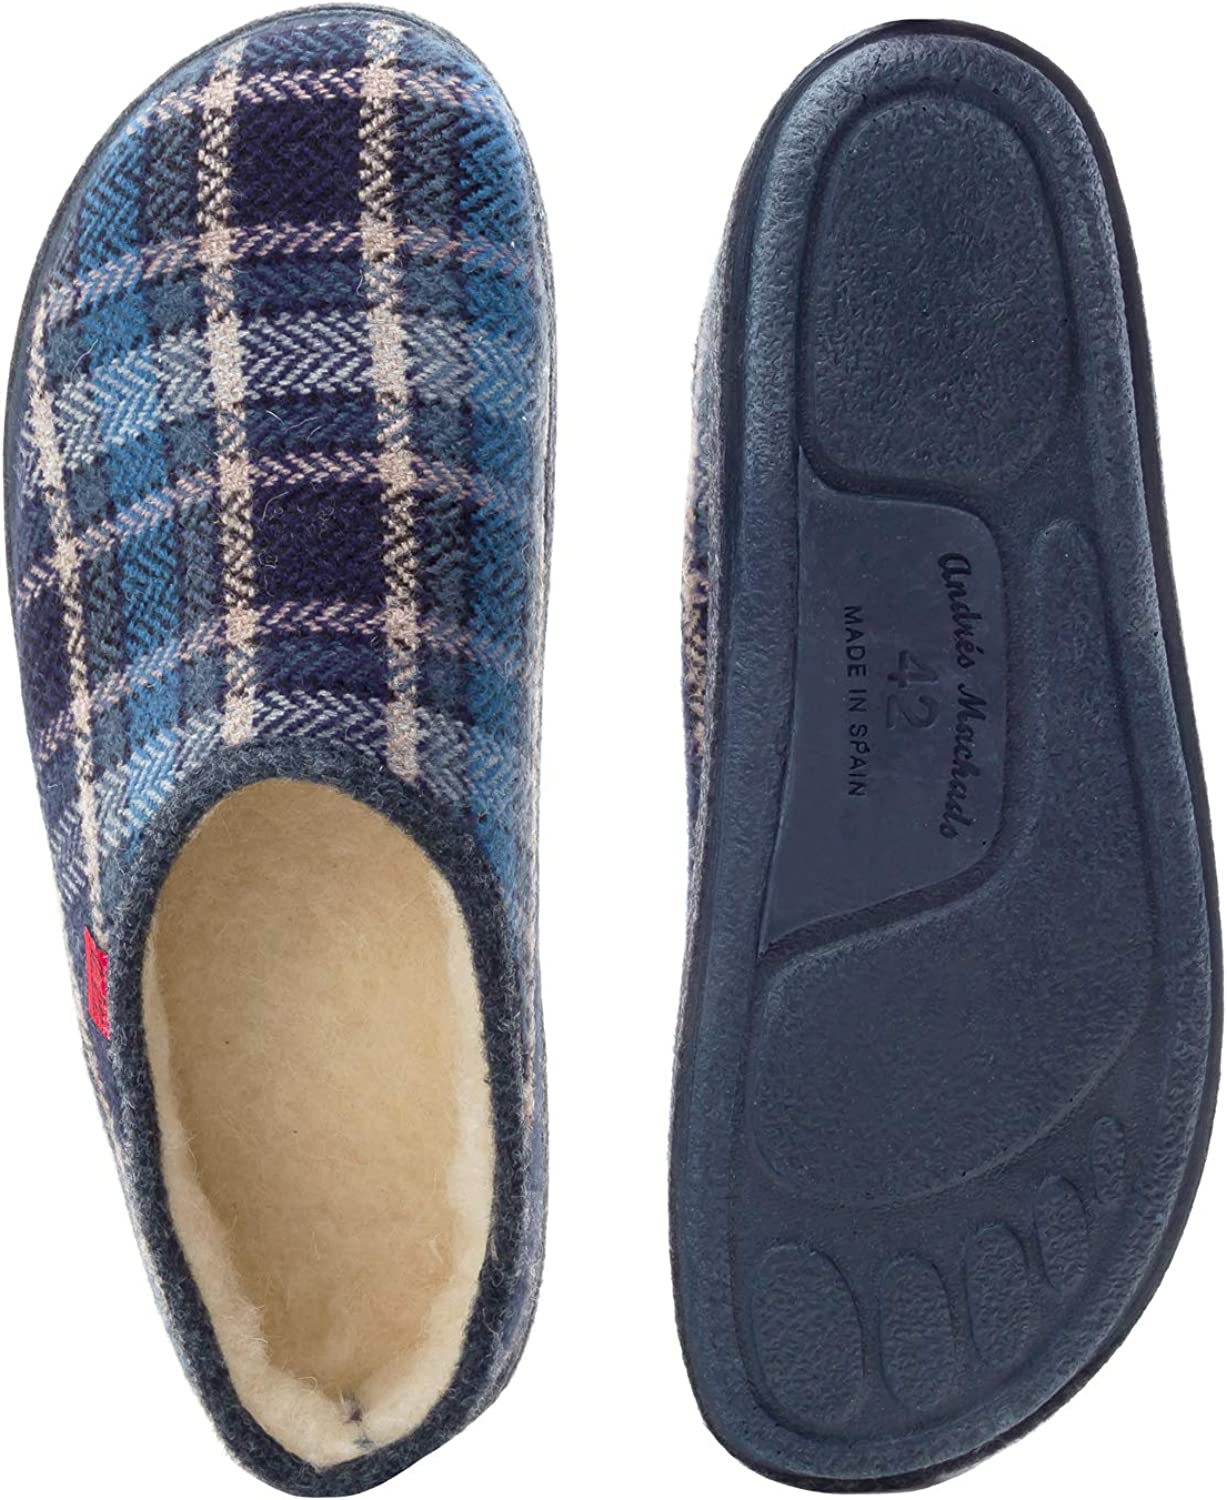 26//50 Andres Machado.AM001.AUTH/ÉNTIQUES chaussons MADE IN SPAIN Unisex.Petites et Grandes Pointures